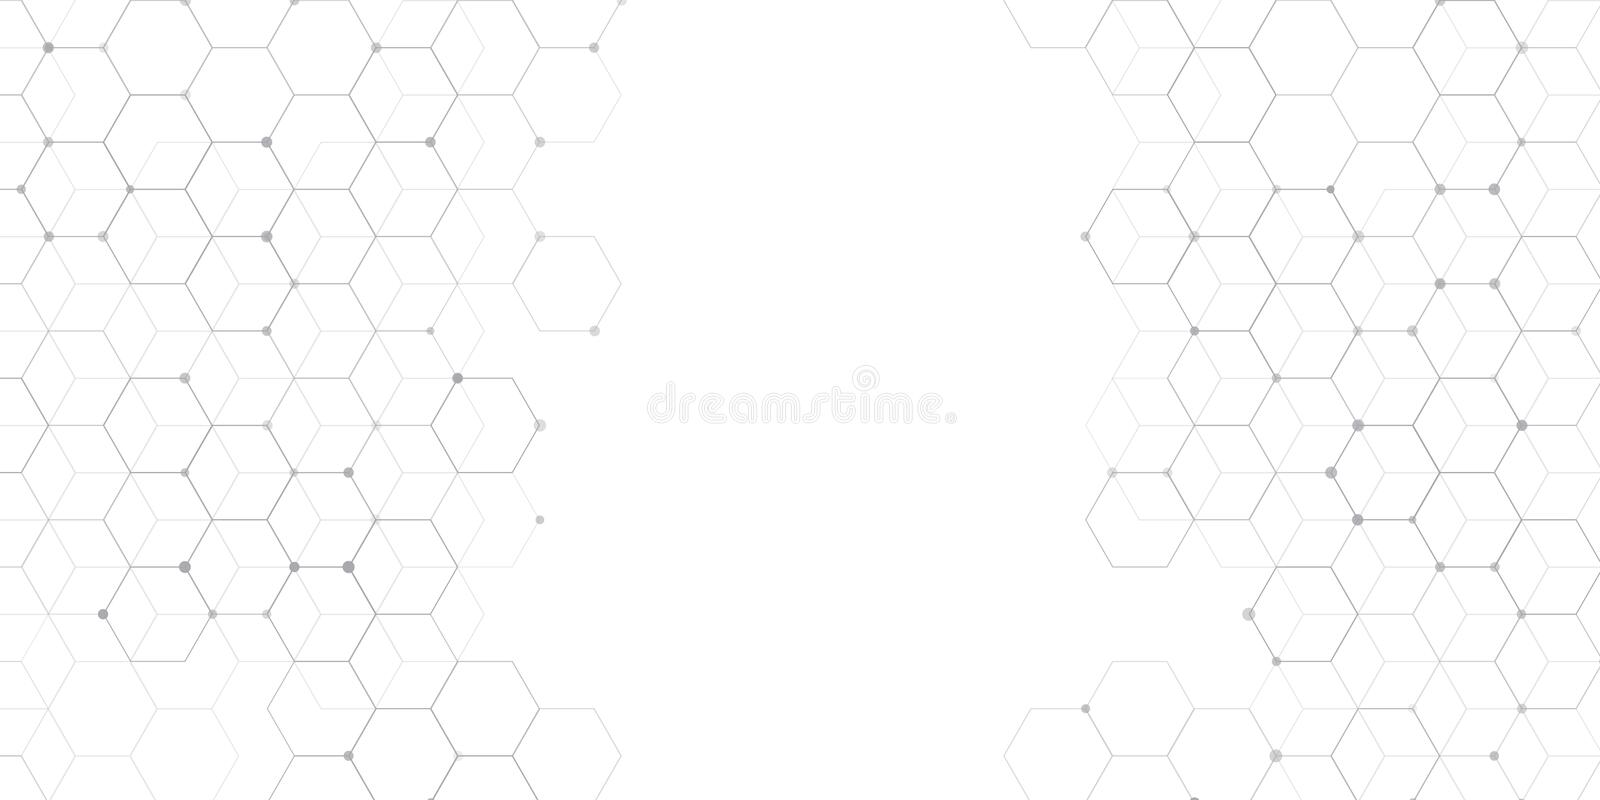 Abstract connections banner design vector illustration